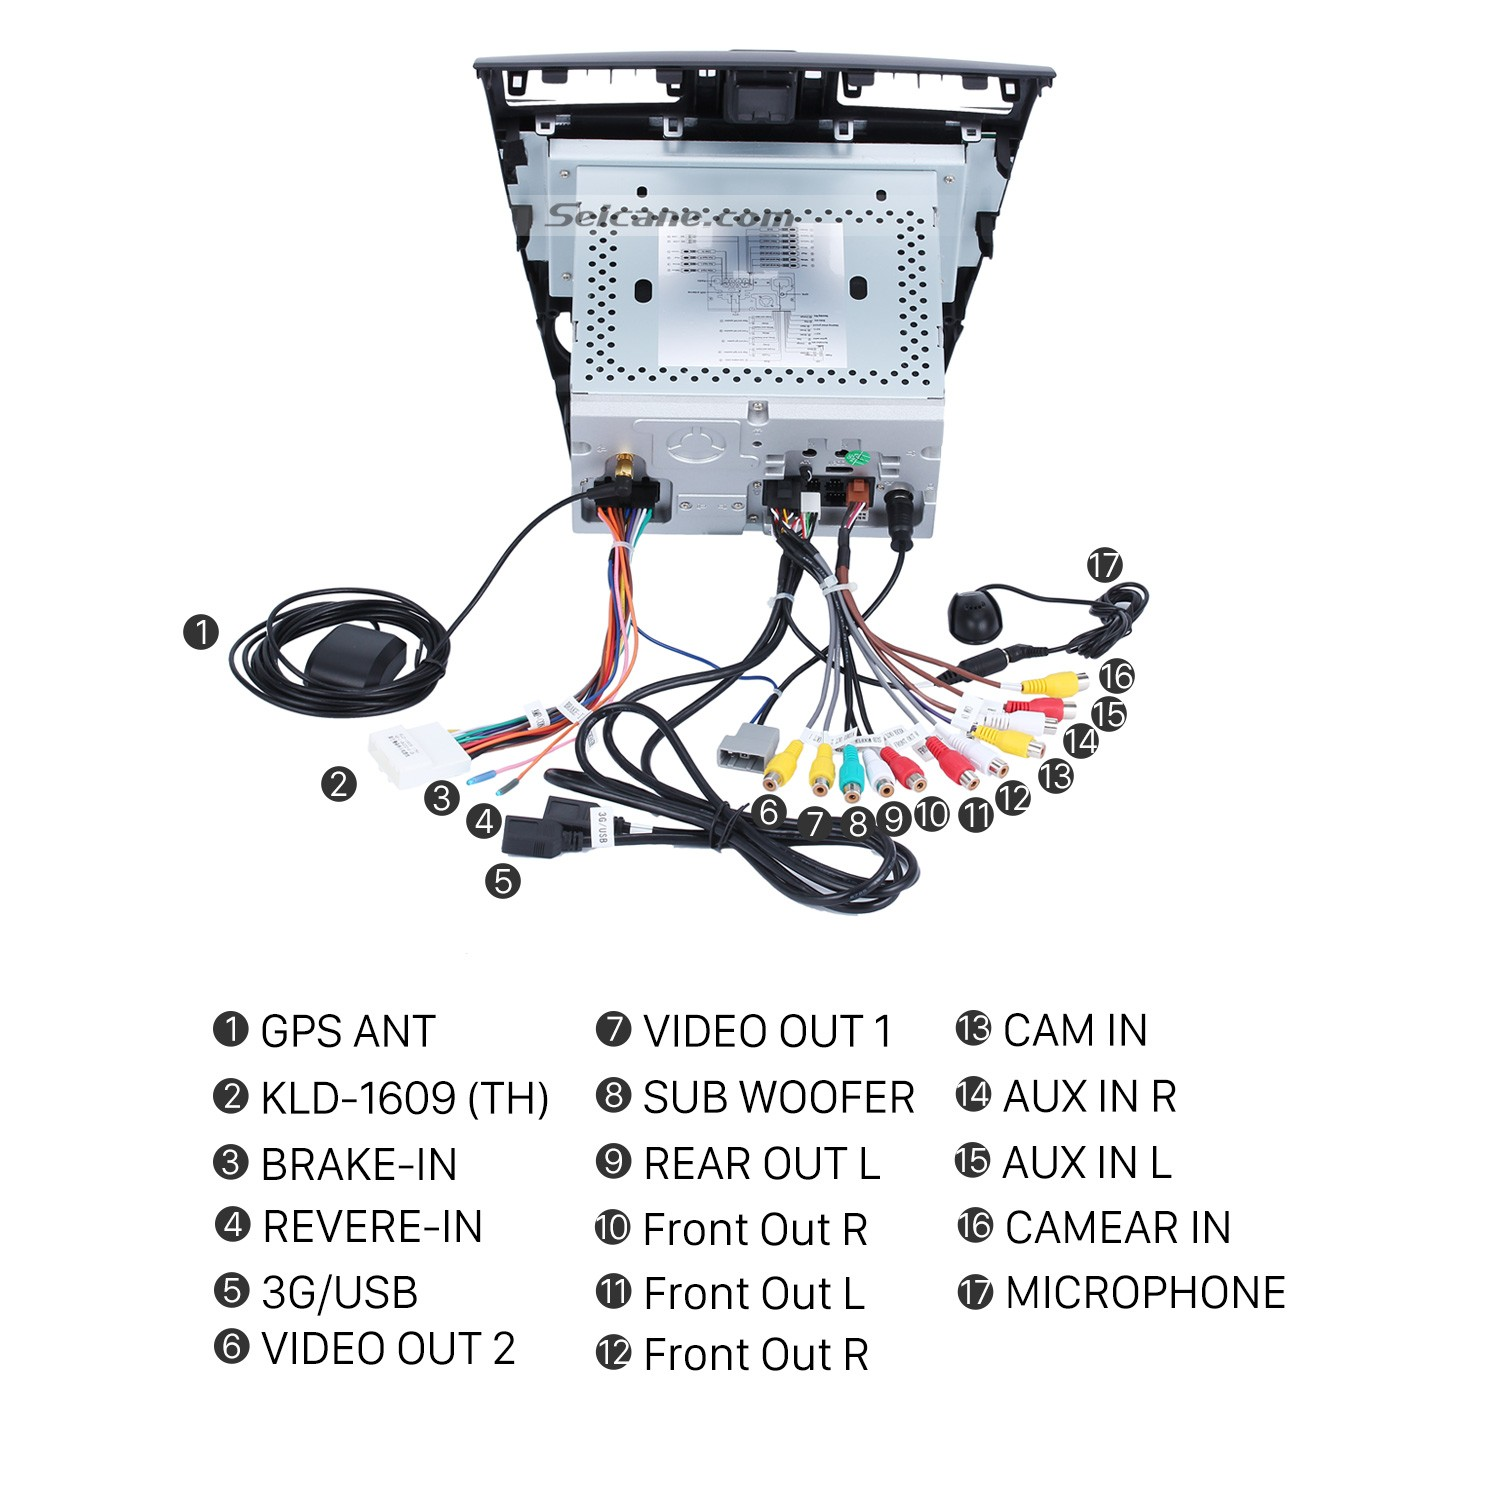 2009 subaru forester stereo wiring diagram belt 2003 ford windstar 3 8 how to install and upgrade a 2014 2015 2016 car for the further confirmation of right connecting all connectors cables you can